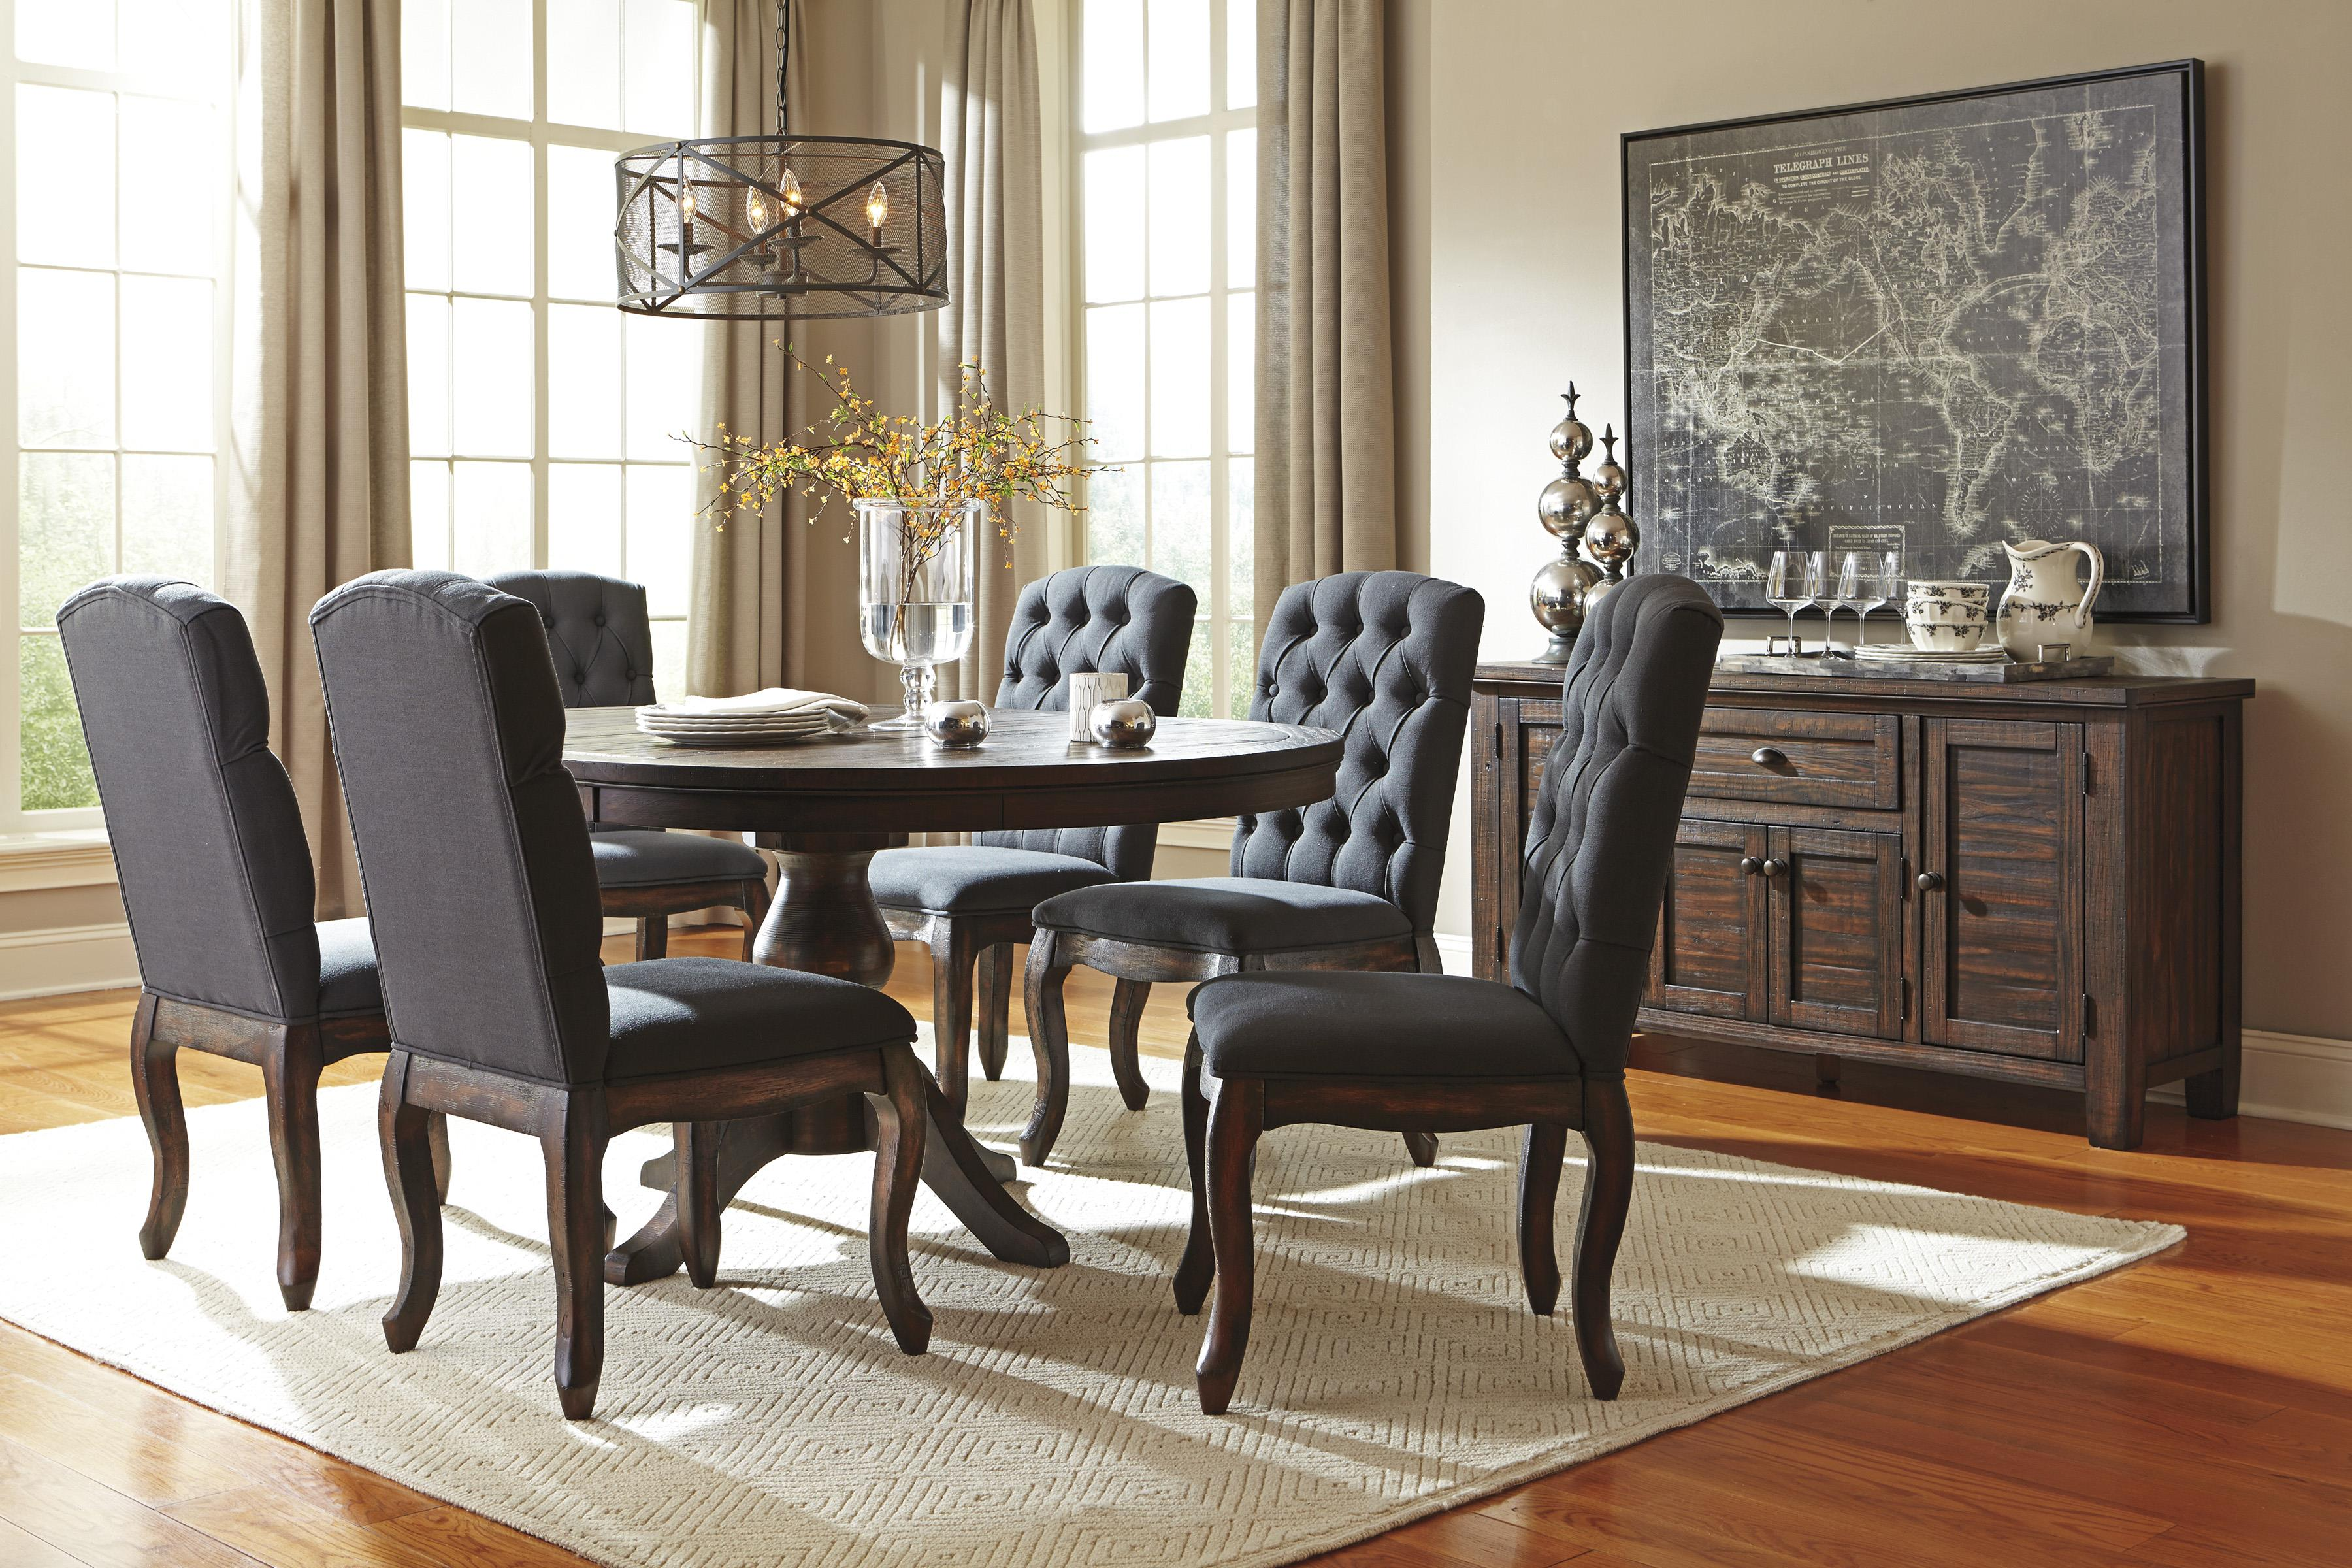 7 piece oval dining table set with upholstered side chairs by signature design by ashley wolf. Black Bedroom Furniture Sets. Home Design Ideas